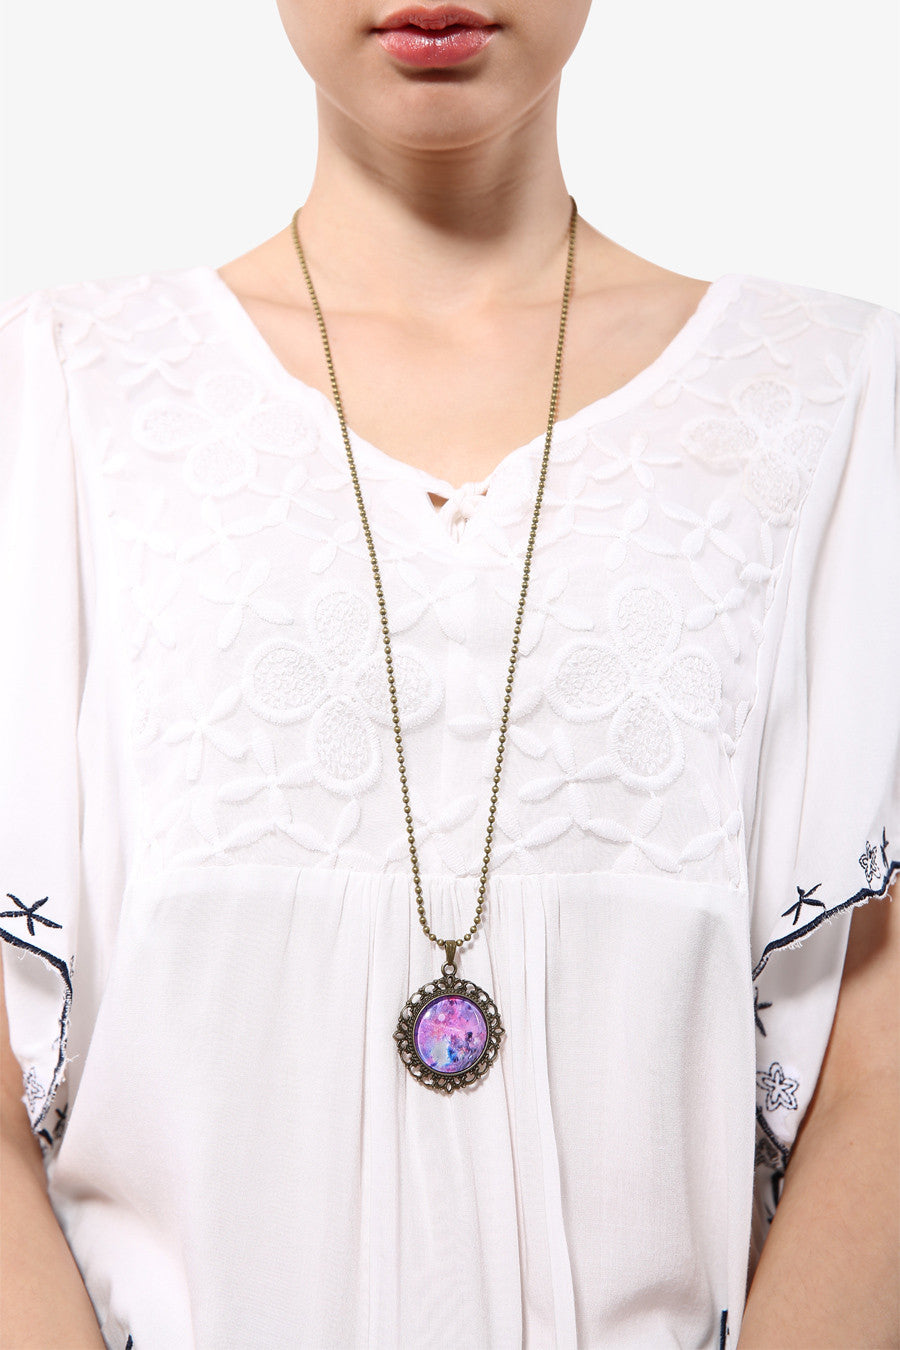 Retro Rosette Nebula Necklace